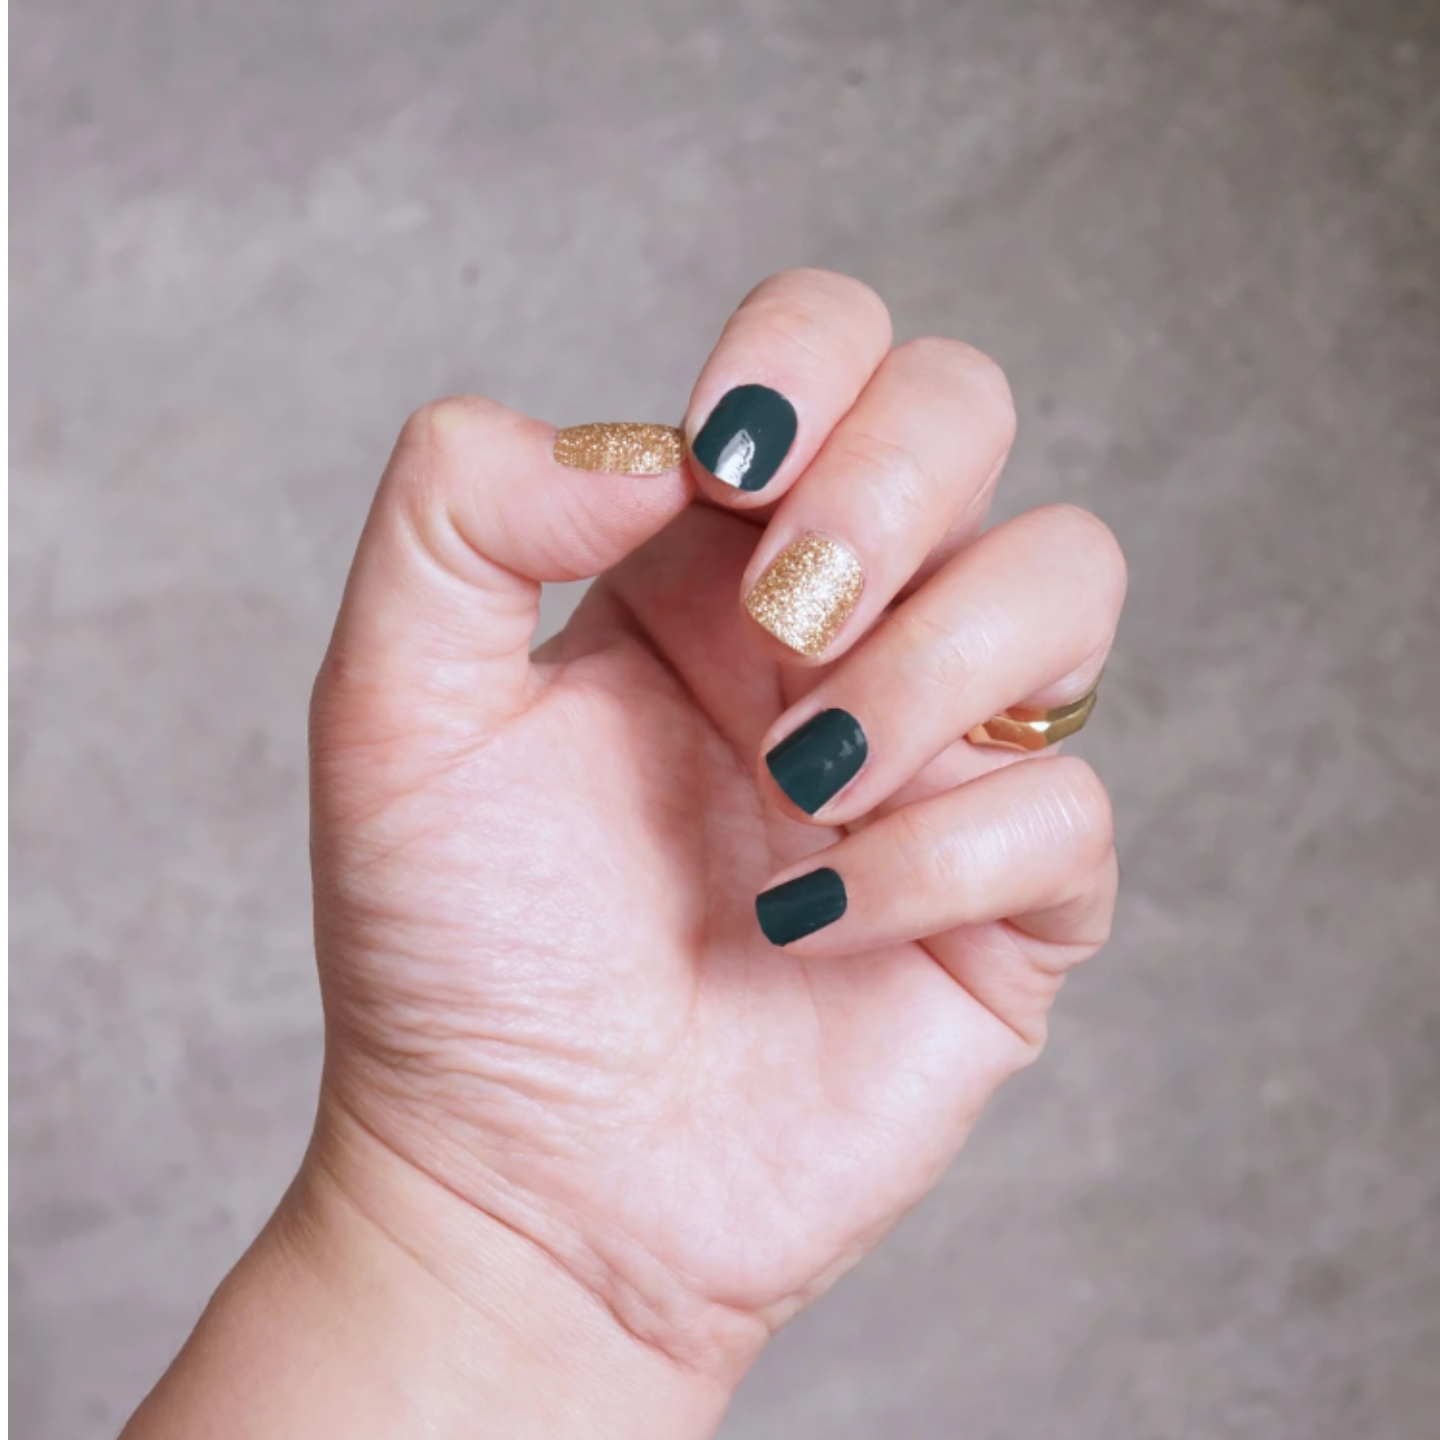 ROYALLY GREEN Nail Wrap Freshly Wrapped